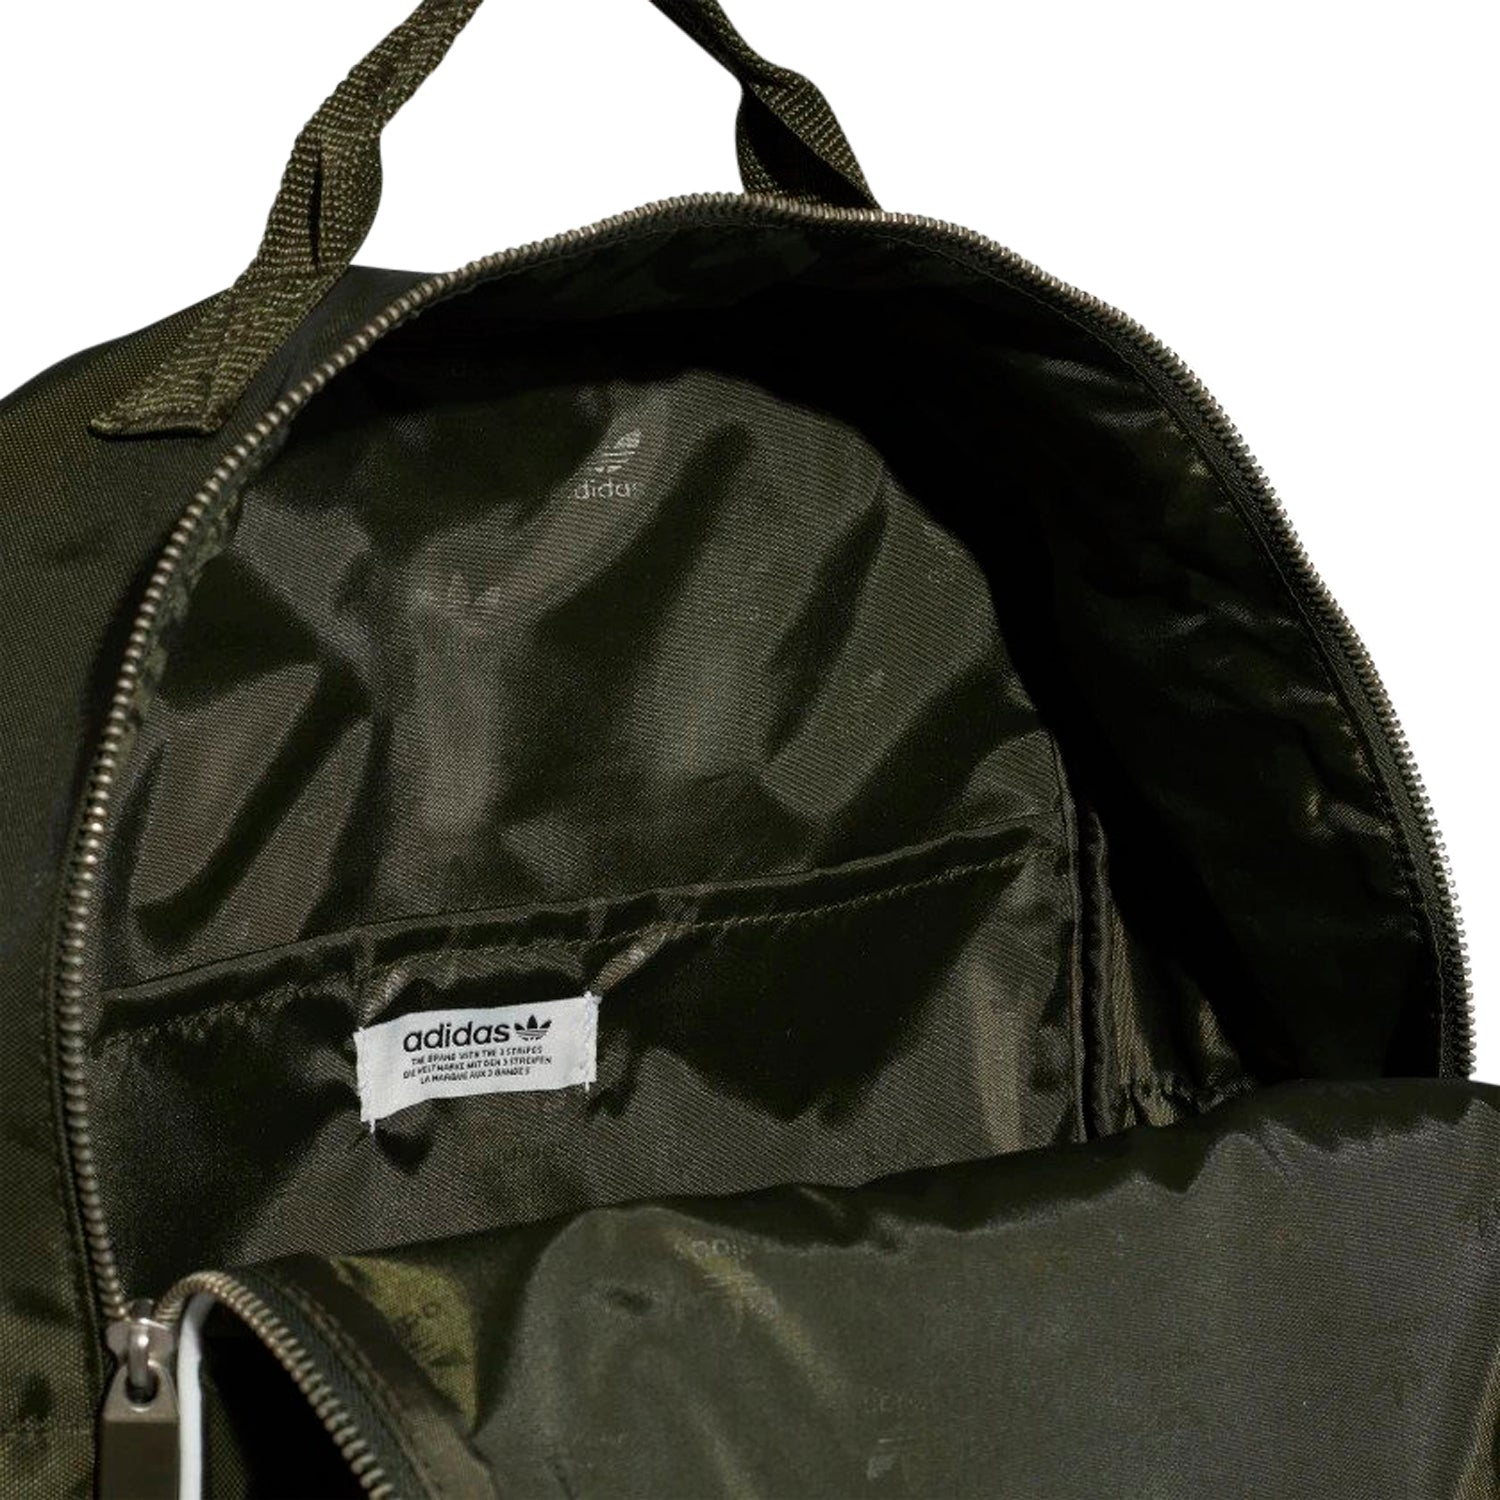 4fed511eca9 ... tradesports.co.uk adidas Originals Classic Backpack Adicolour Dark  Green ...